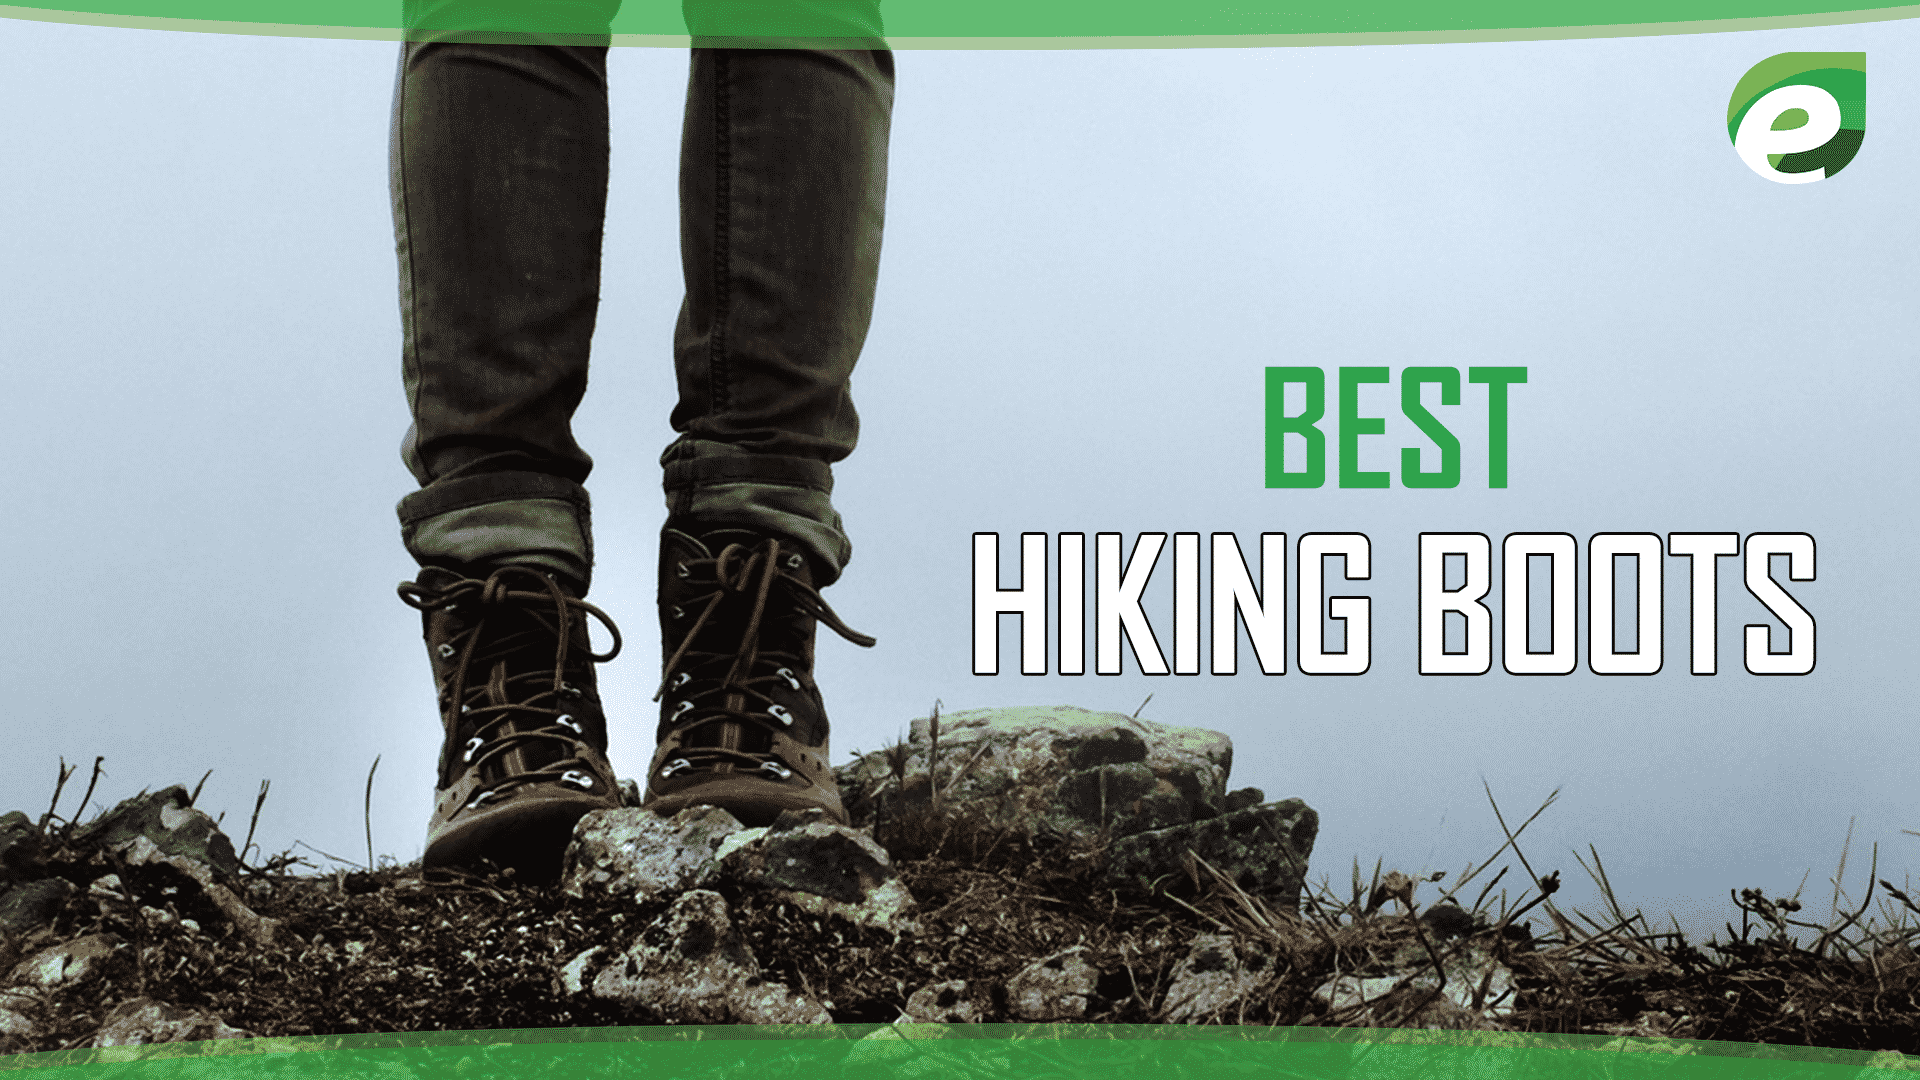 best hiking boots- featured image